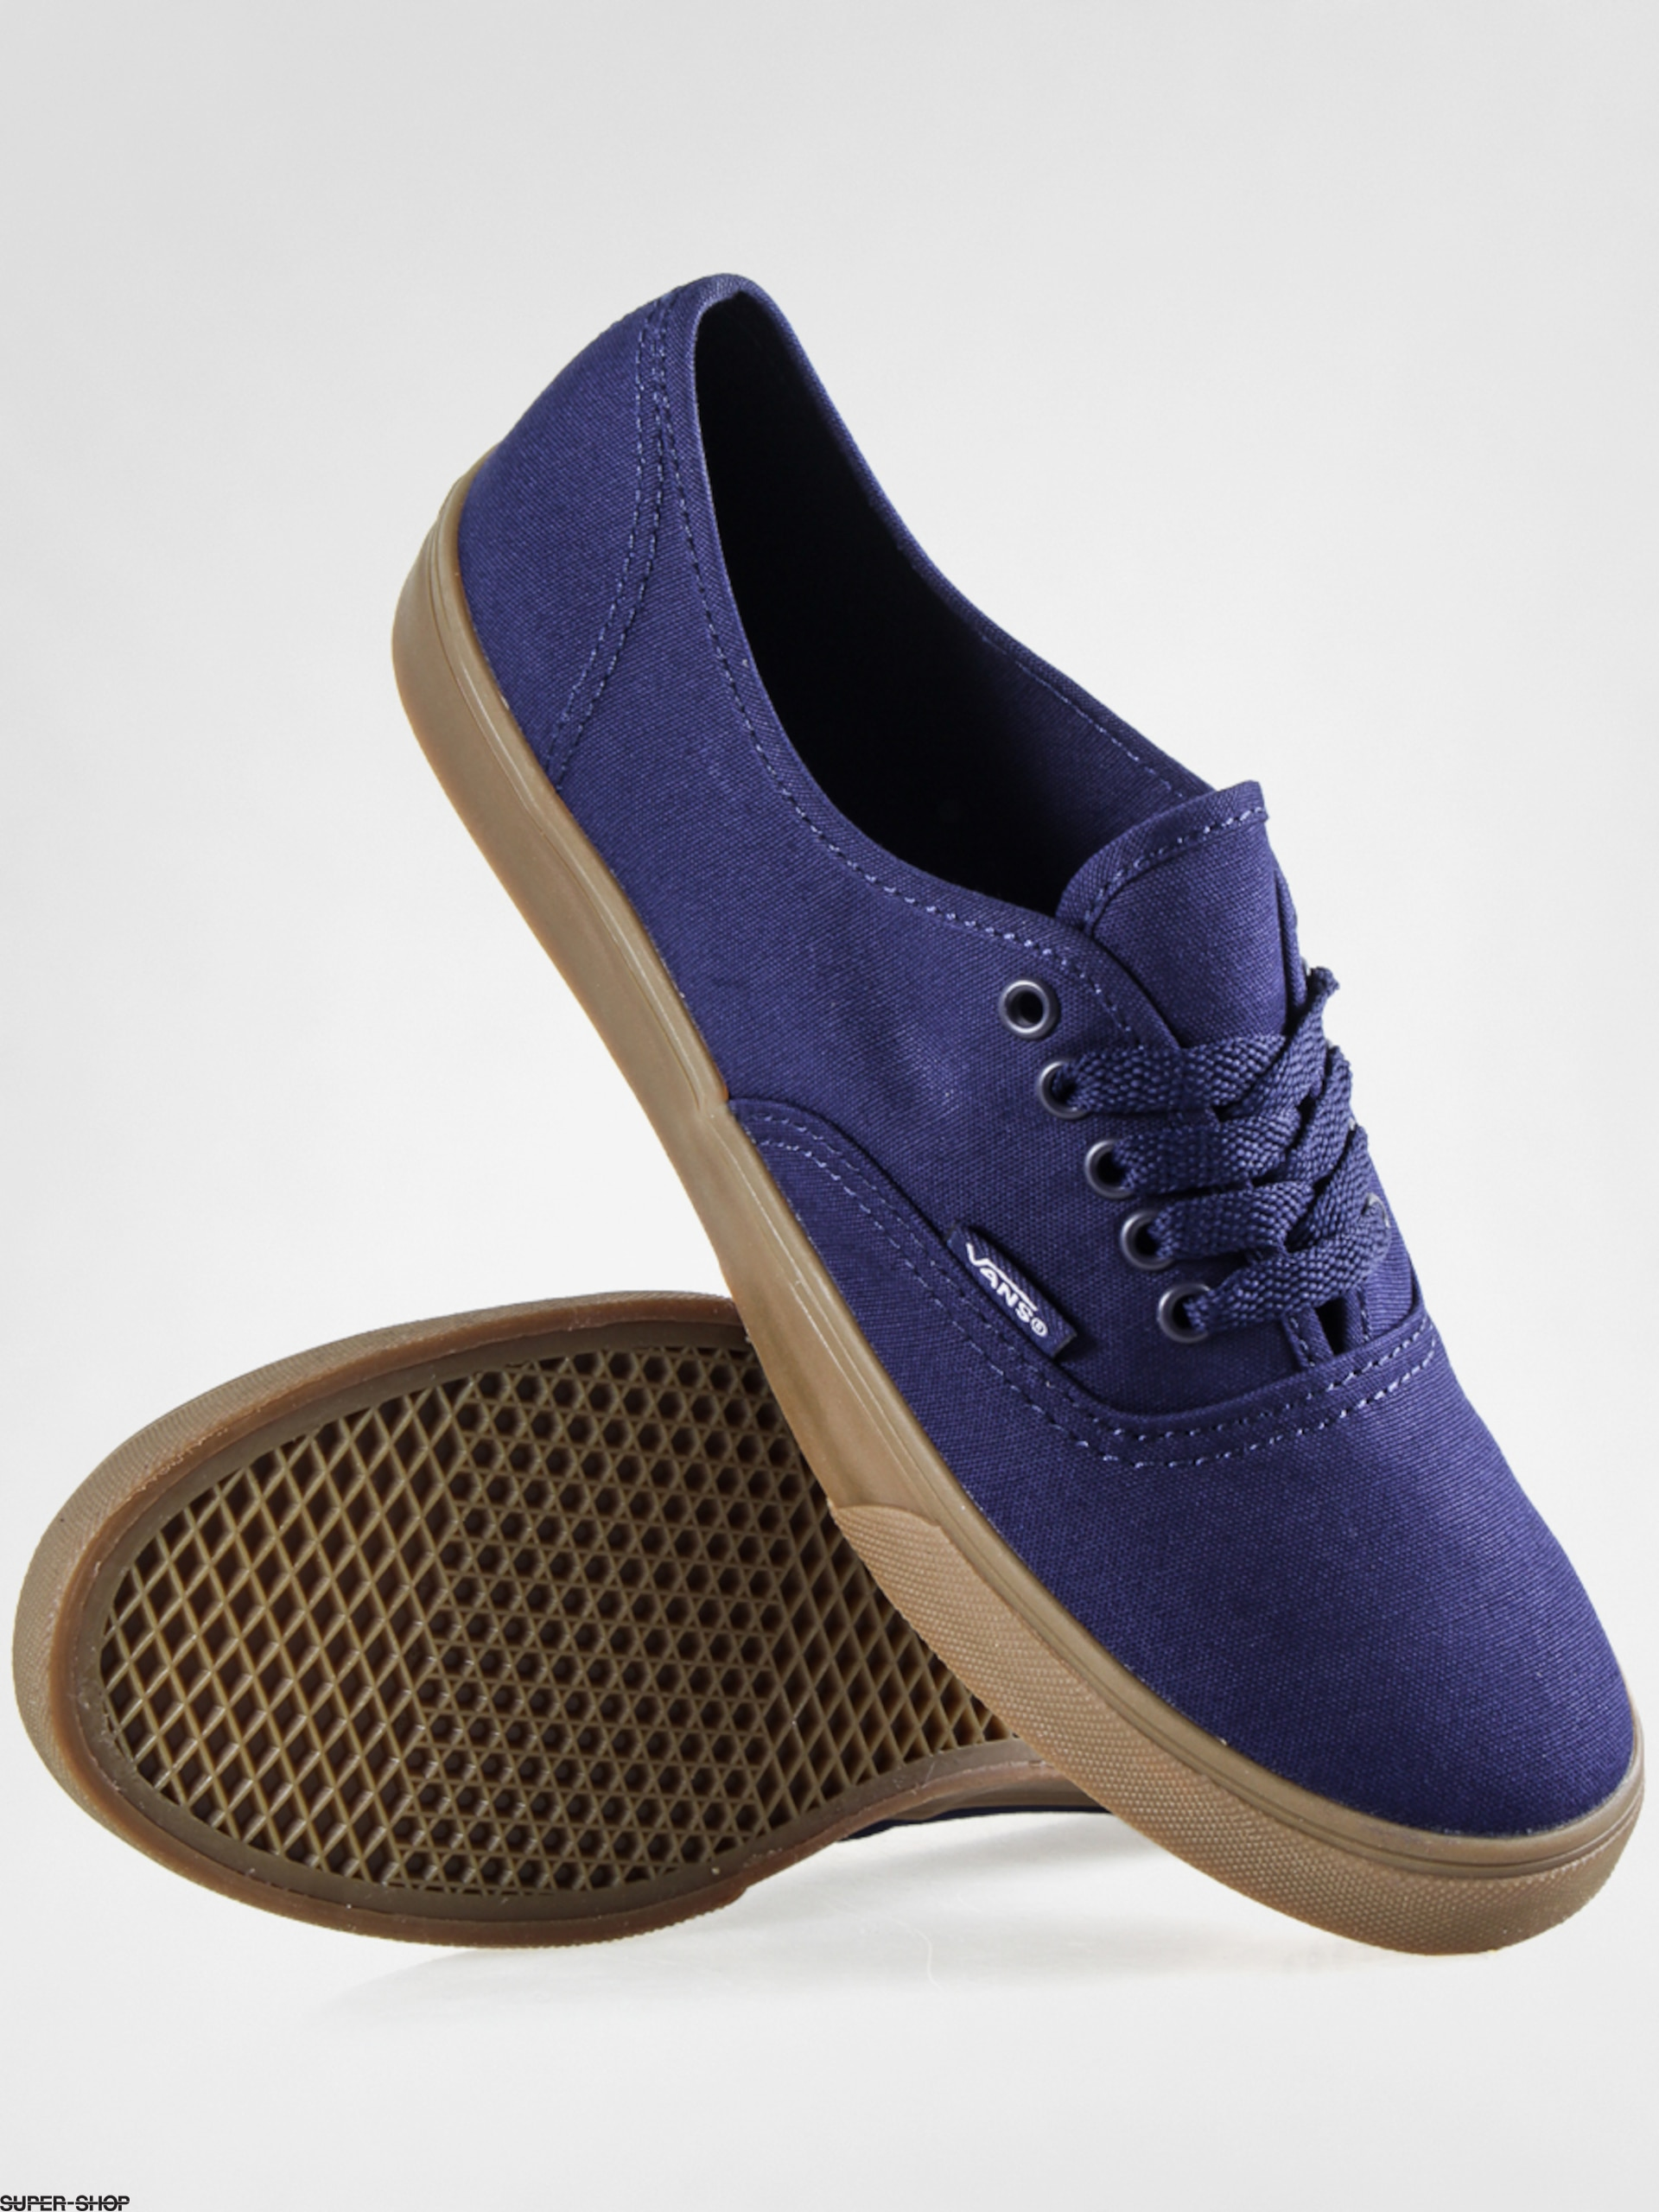 vans gum sole authentic lo pro